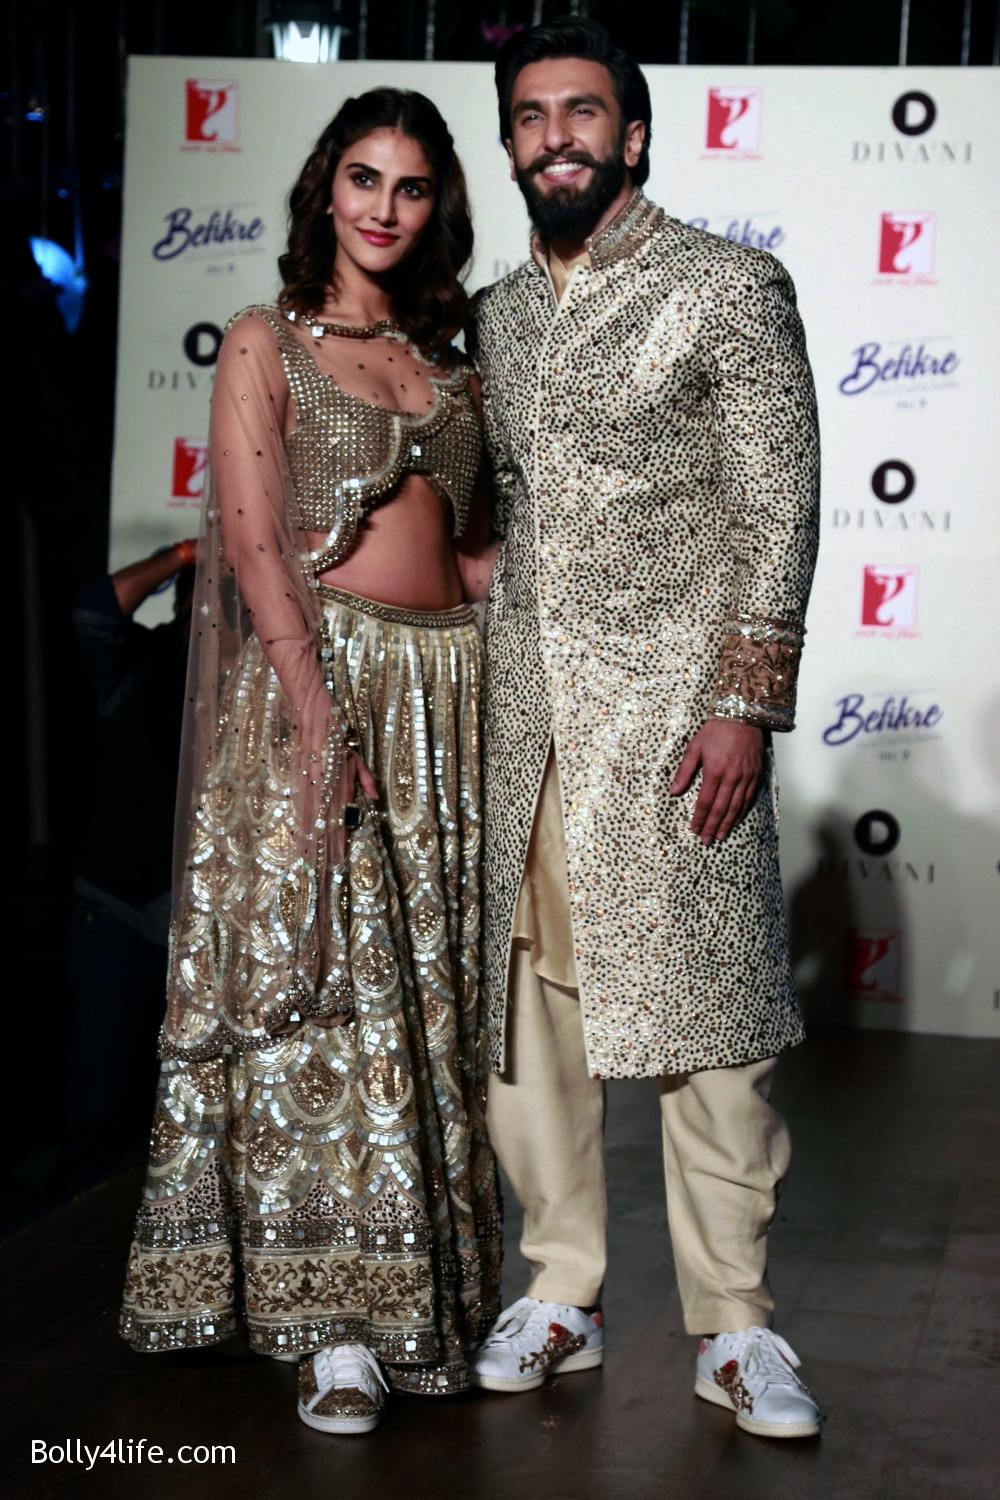 Divani-Fashion-Show-Ranveer-Singh-and-Vaani-Kapoor-14.jpg